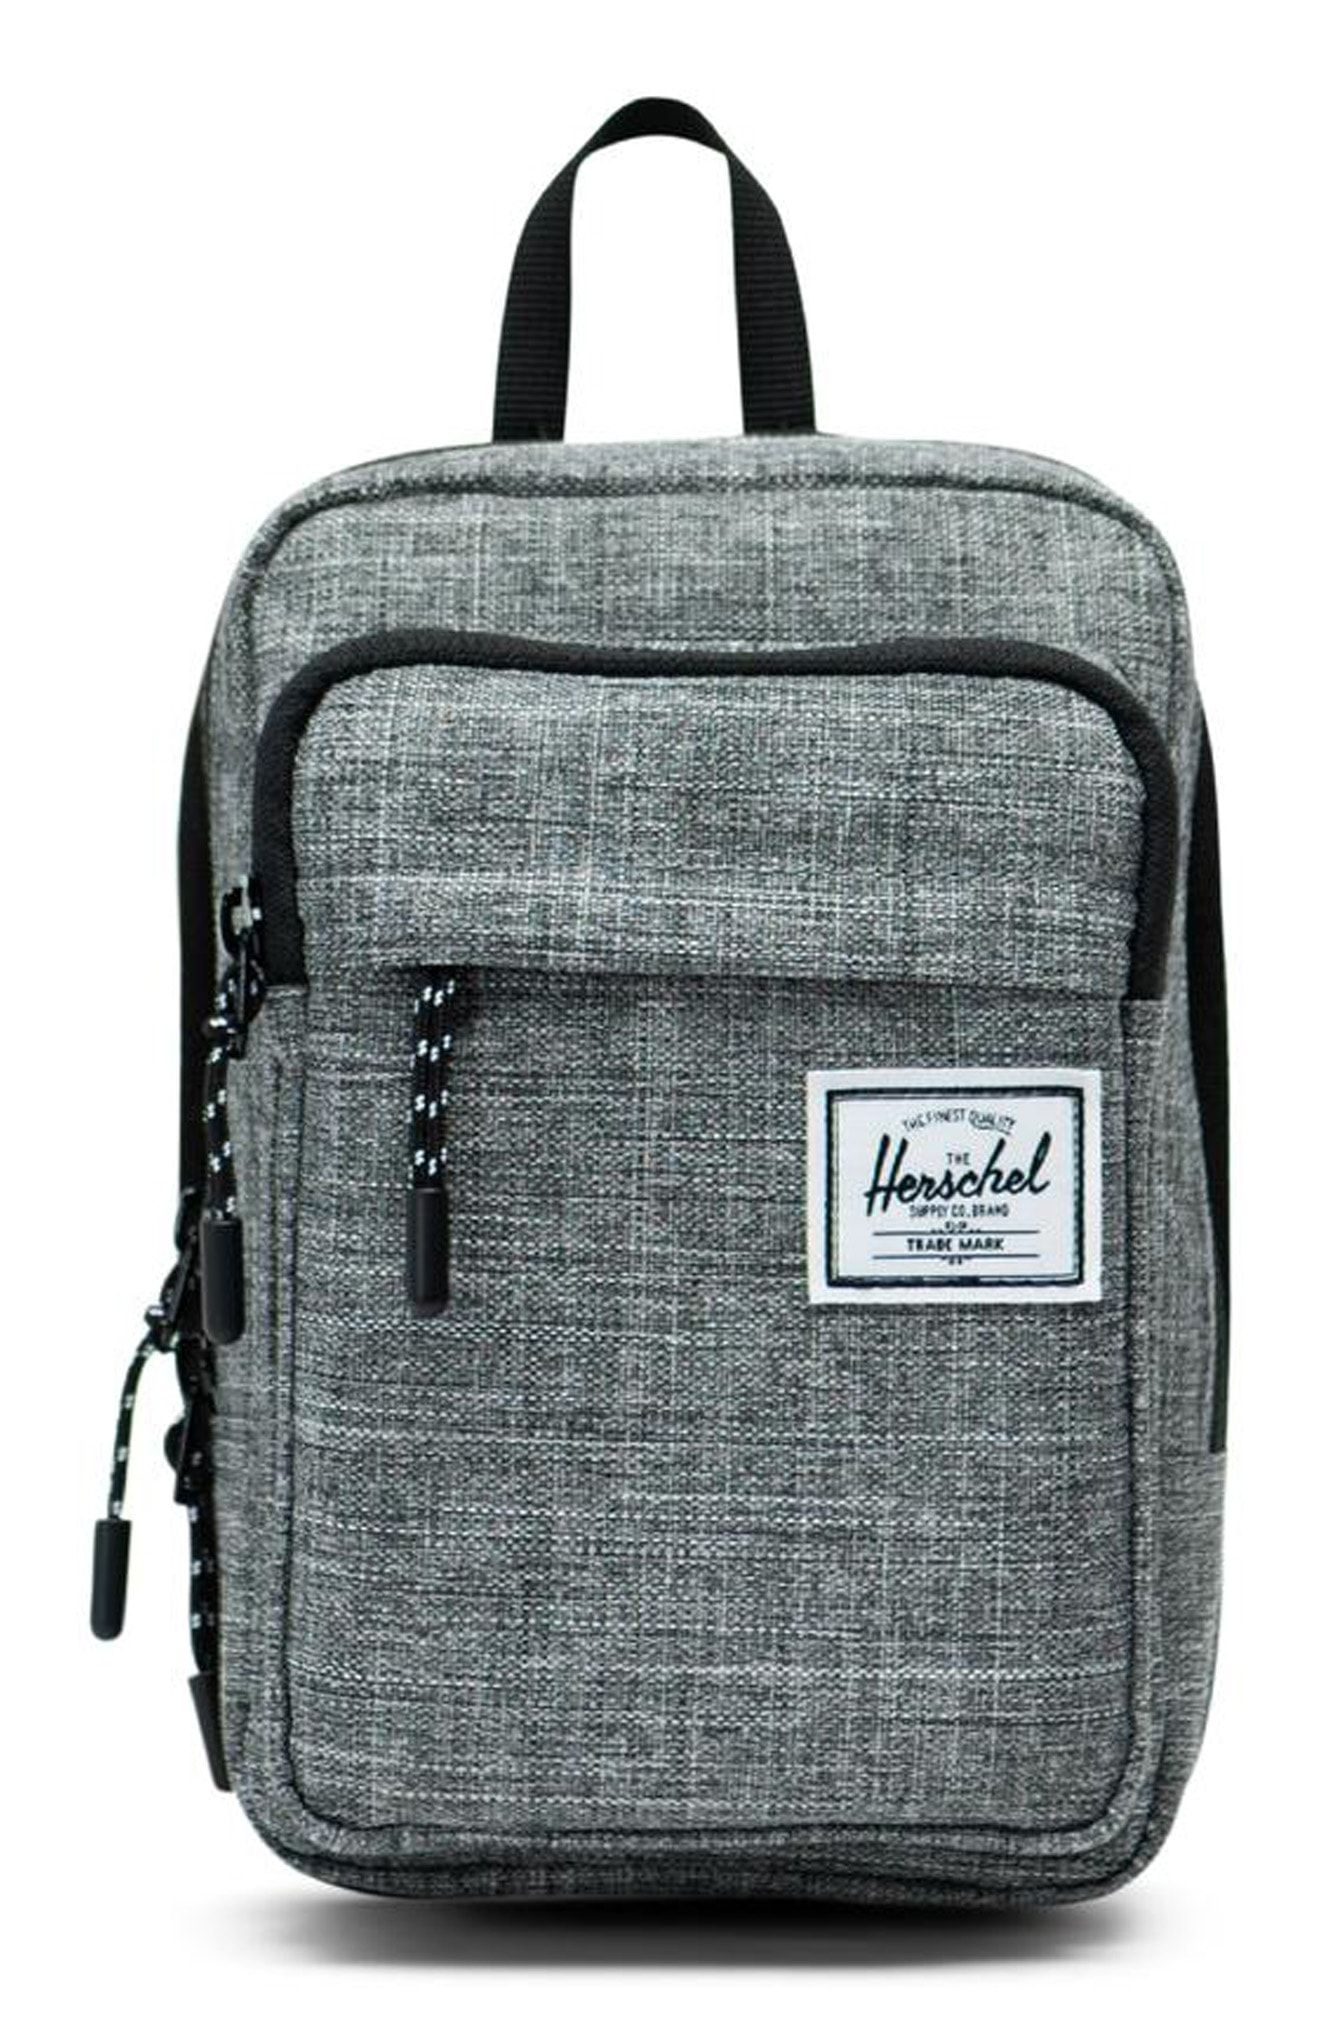 8edfd0a60f00 HERSCHEL SUPPLY CO. LARGE FORM SHOULDER BAG - GREY.  herschelsupplyco.  bags   shoulder bags